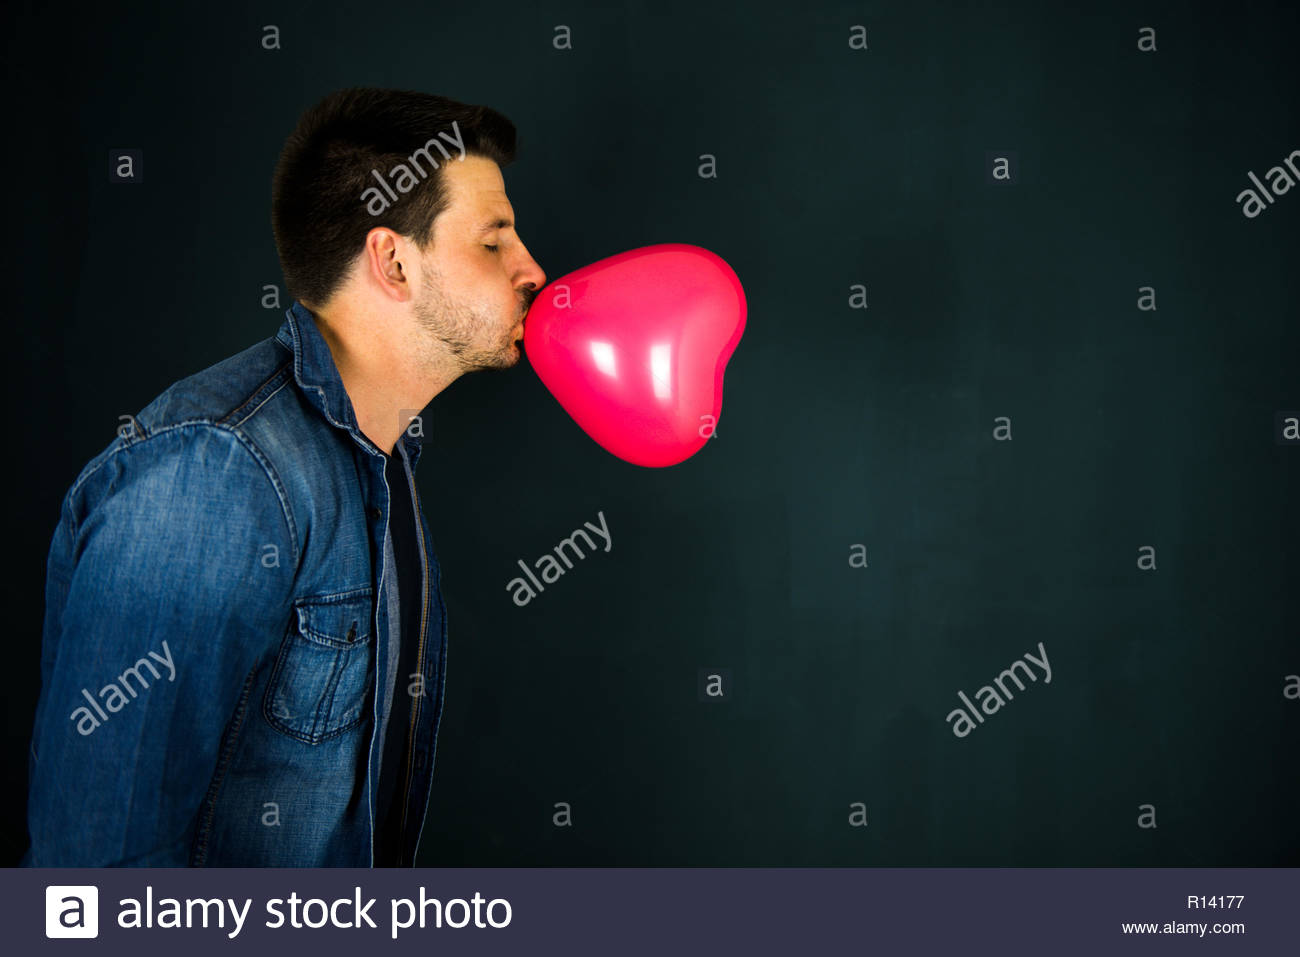 Side view of a young man blowing up a red balloon - Stock Image